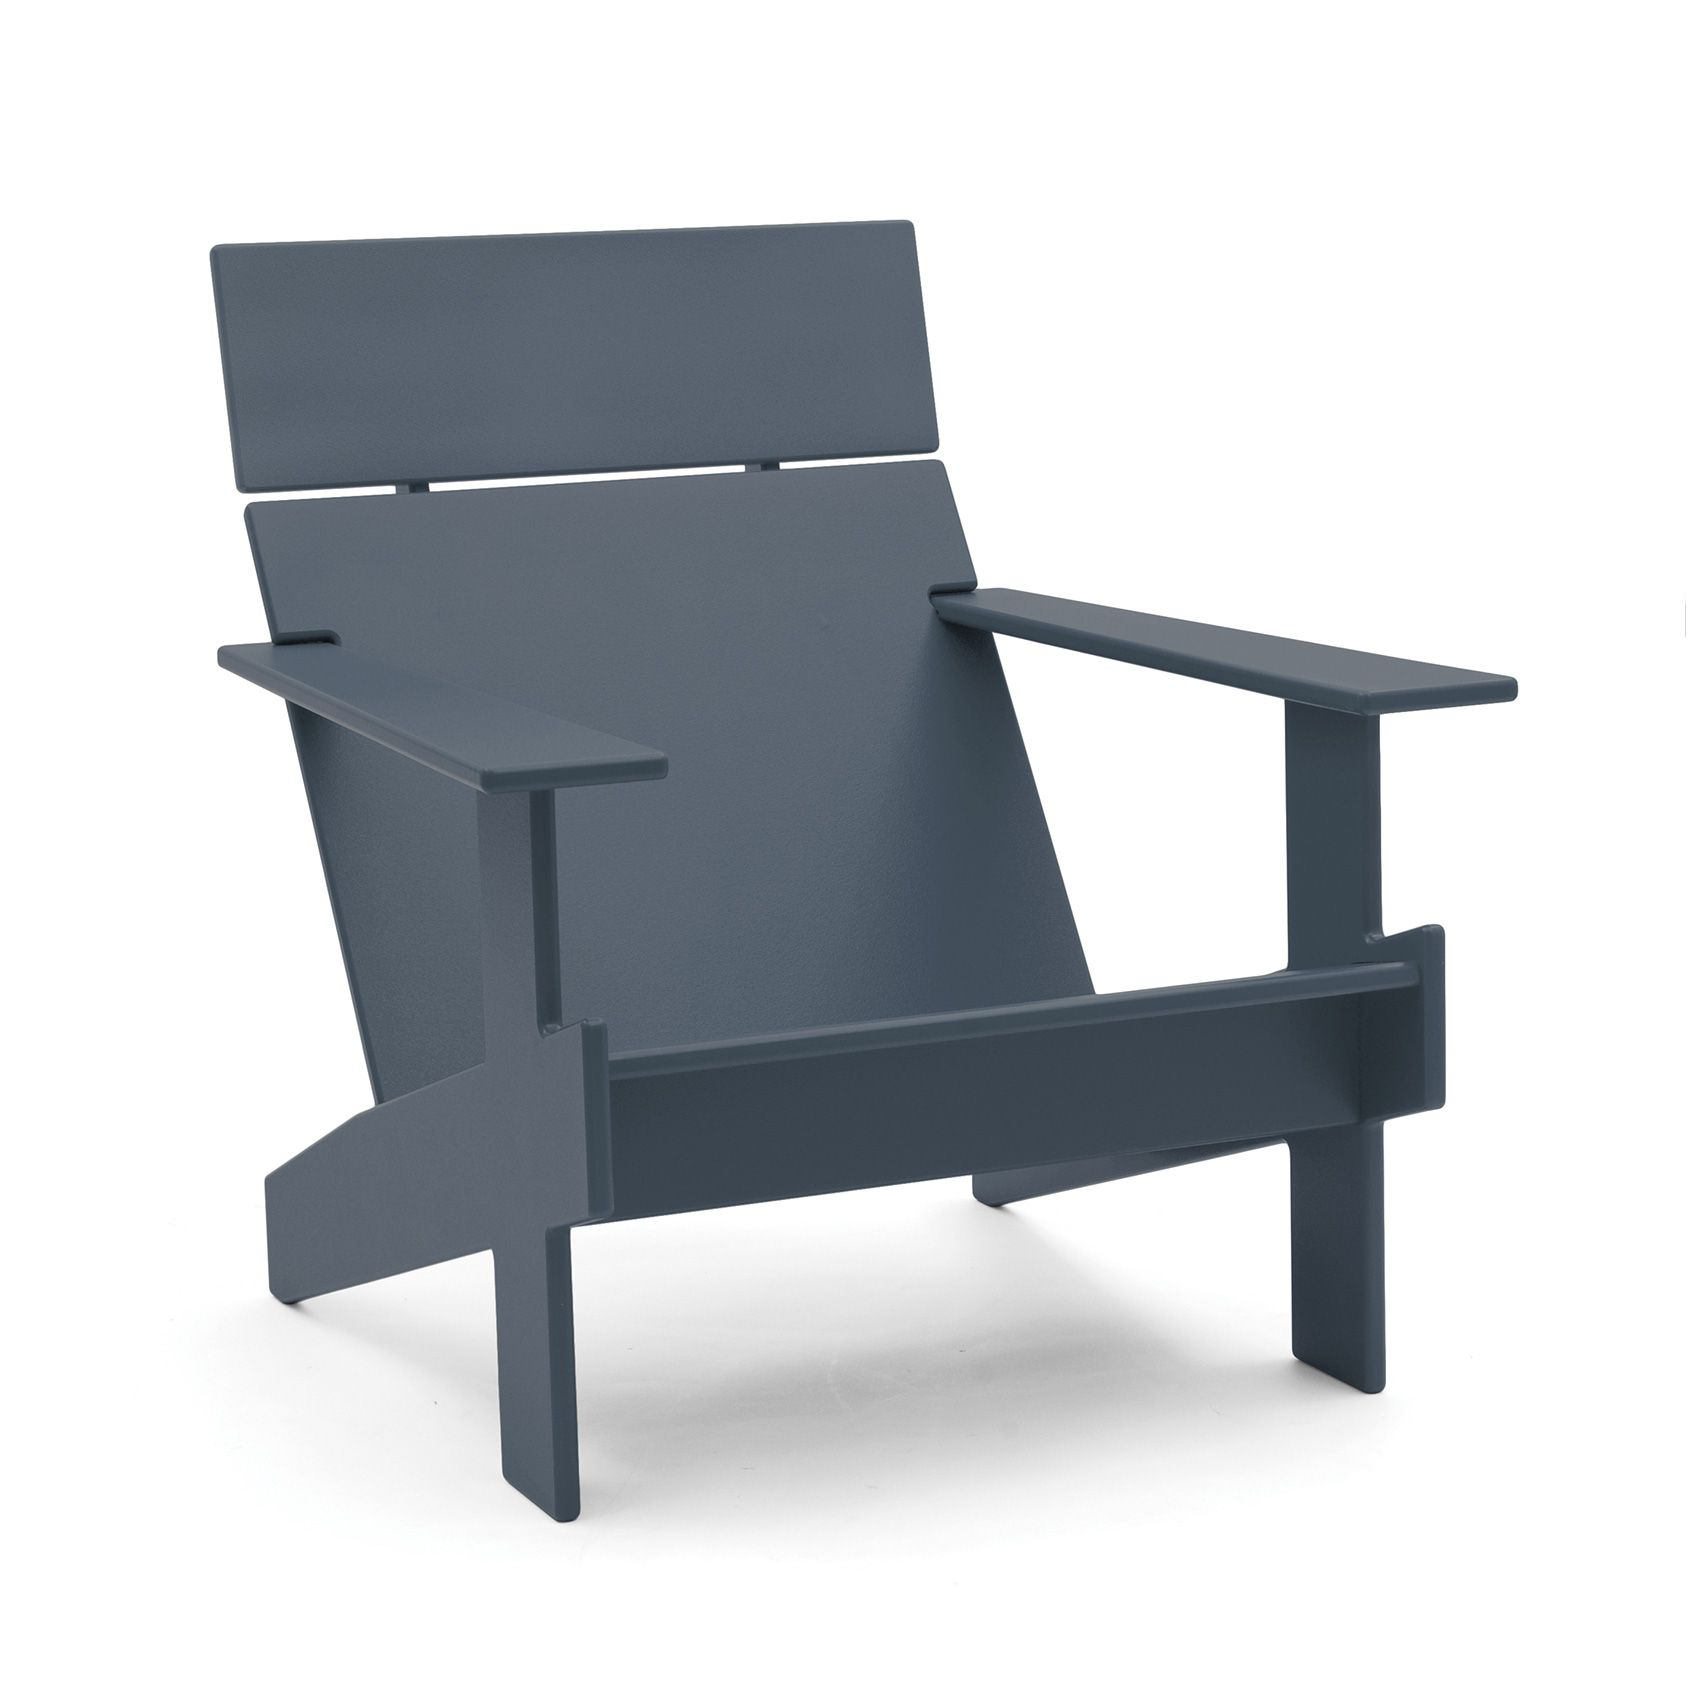 Loll Designsu0027 Namesake Chair, The Lollygagger Lounge Is An Outdoor Patio  Chair That Redefines